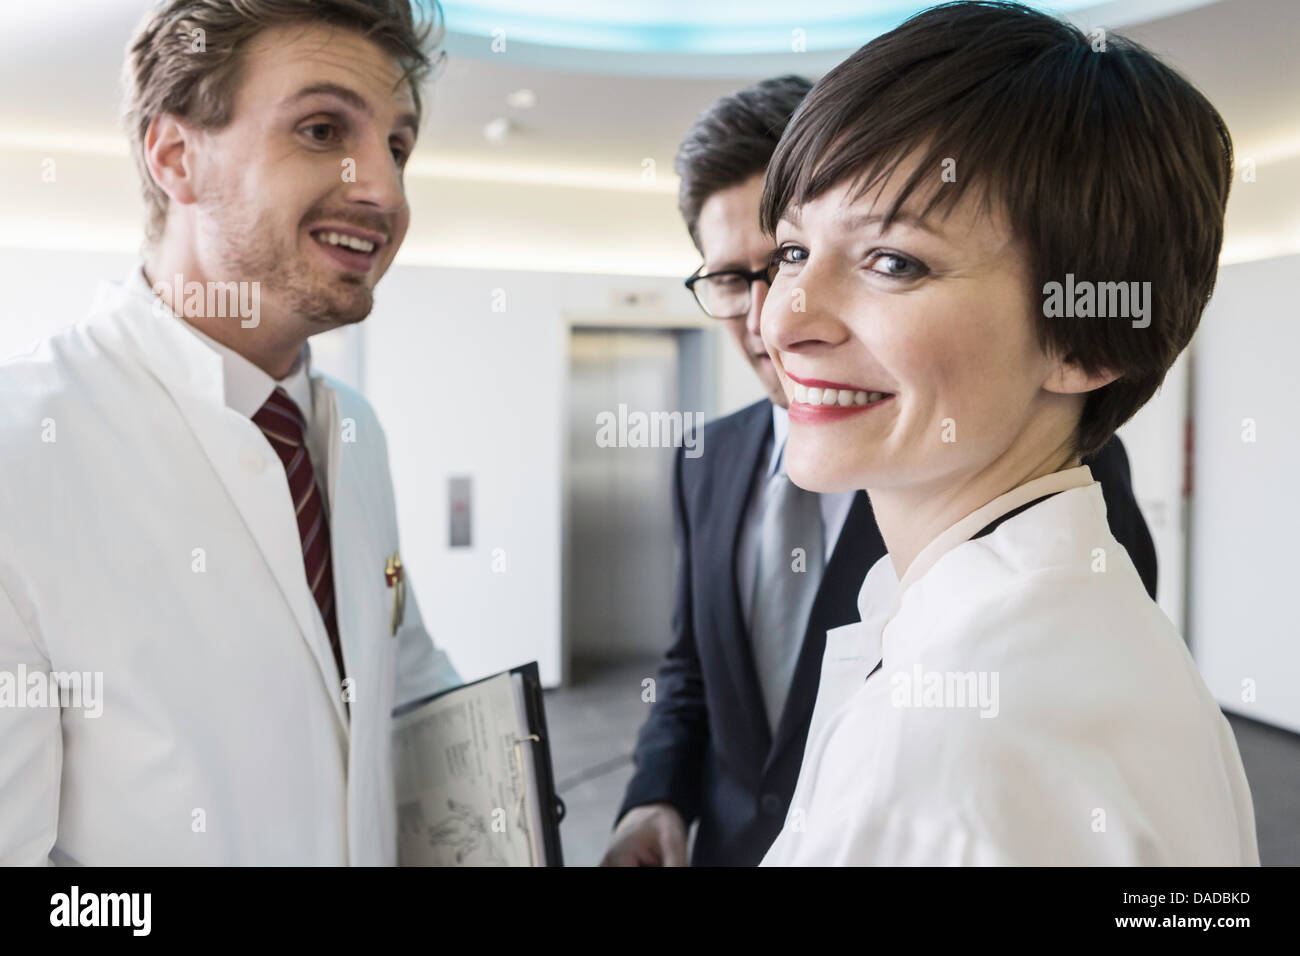 Three mid adults smiling in lobby - Stock Image